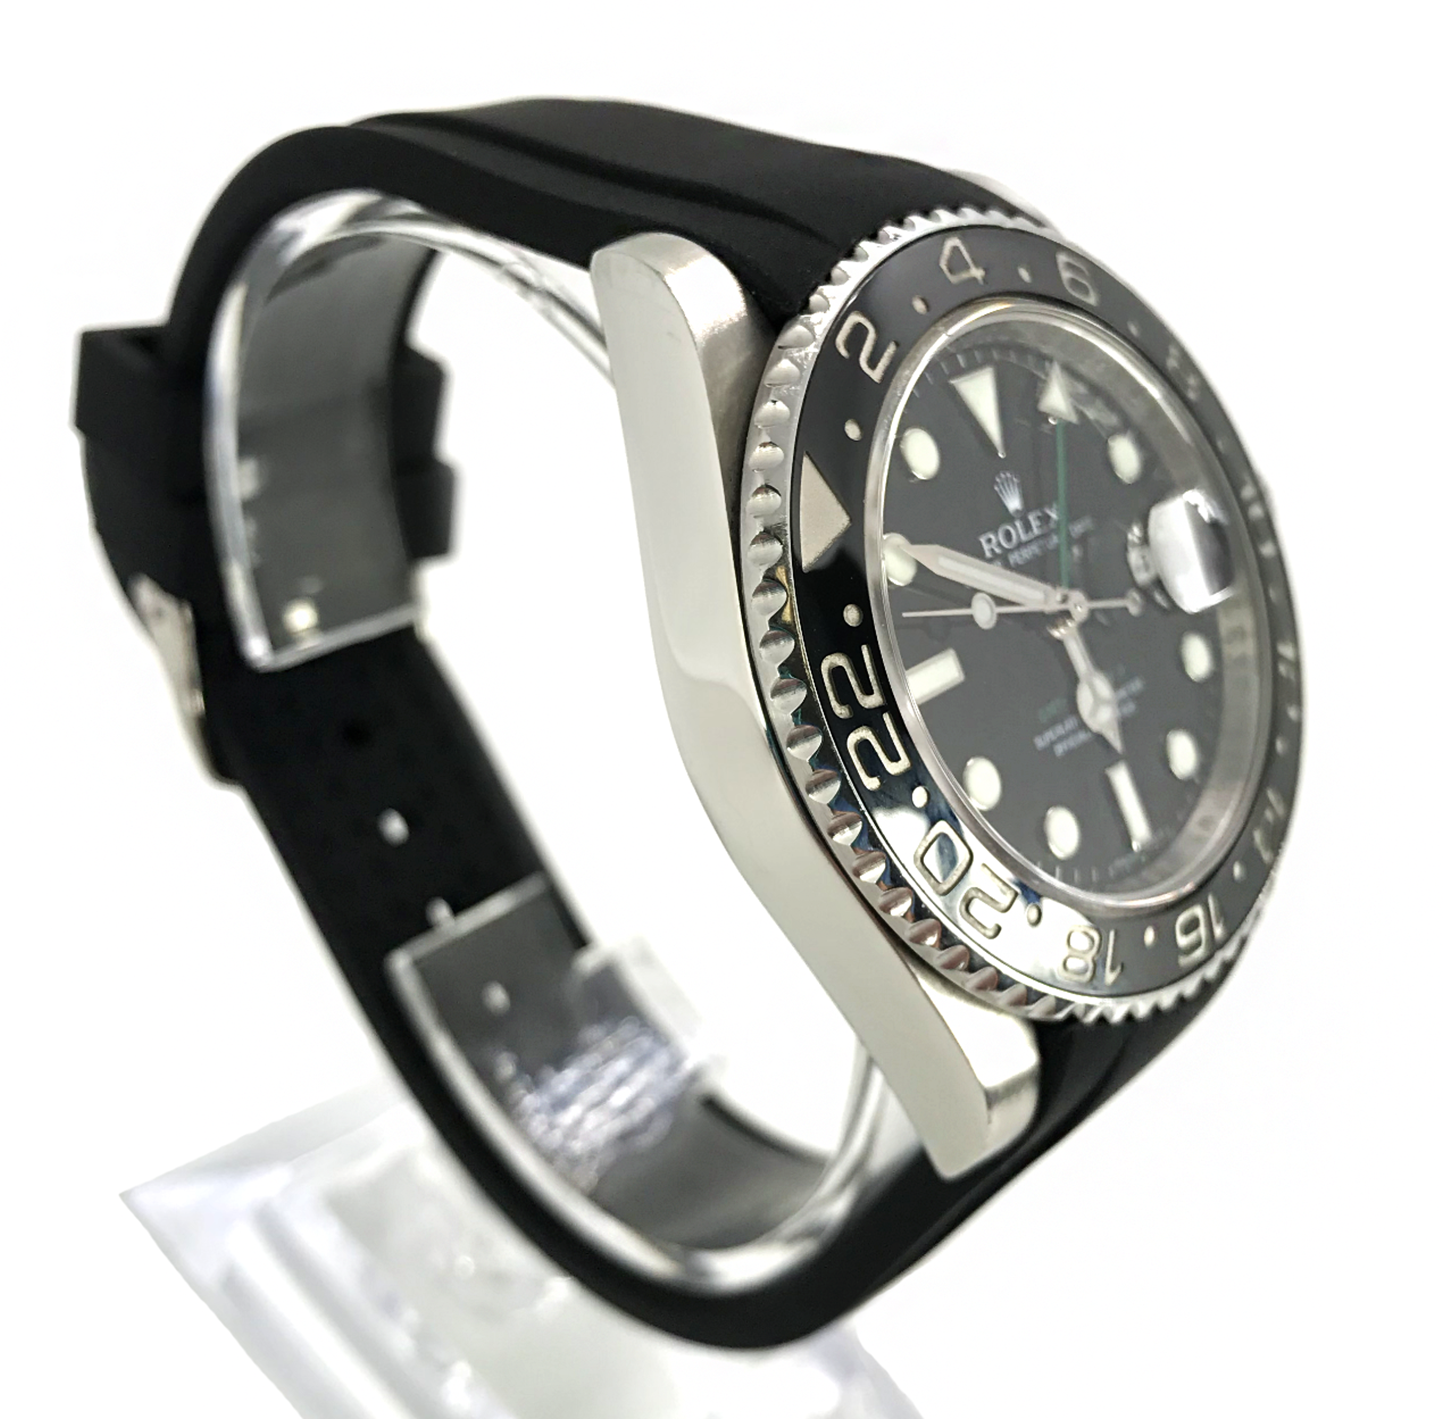 gmt-master-ii-rubber-strap-left.png